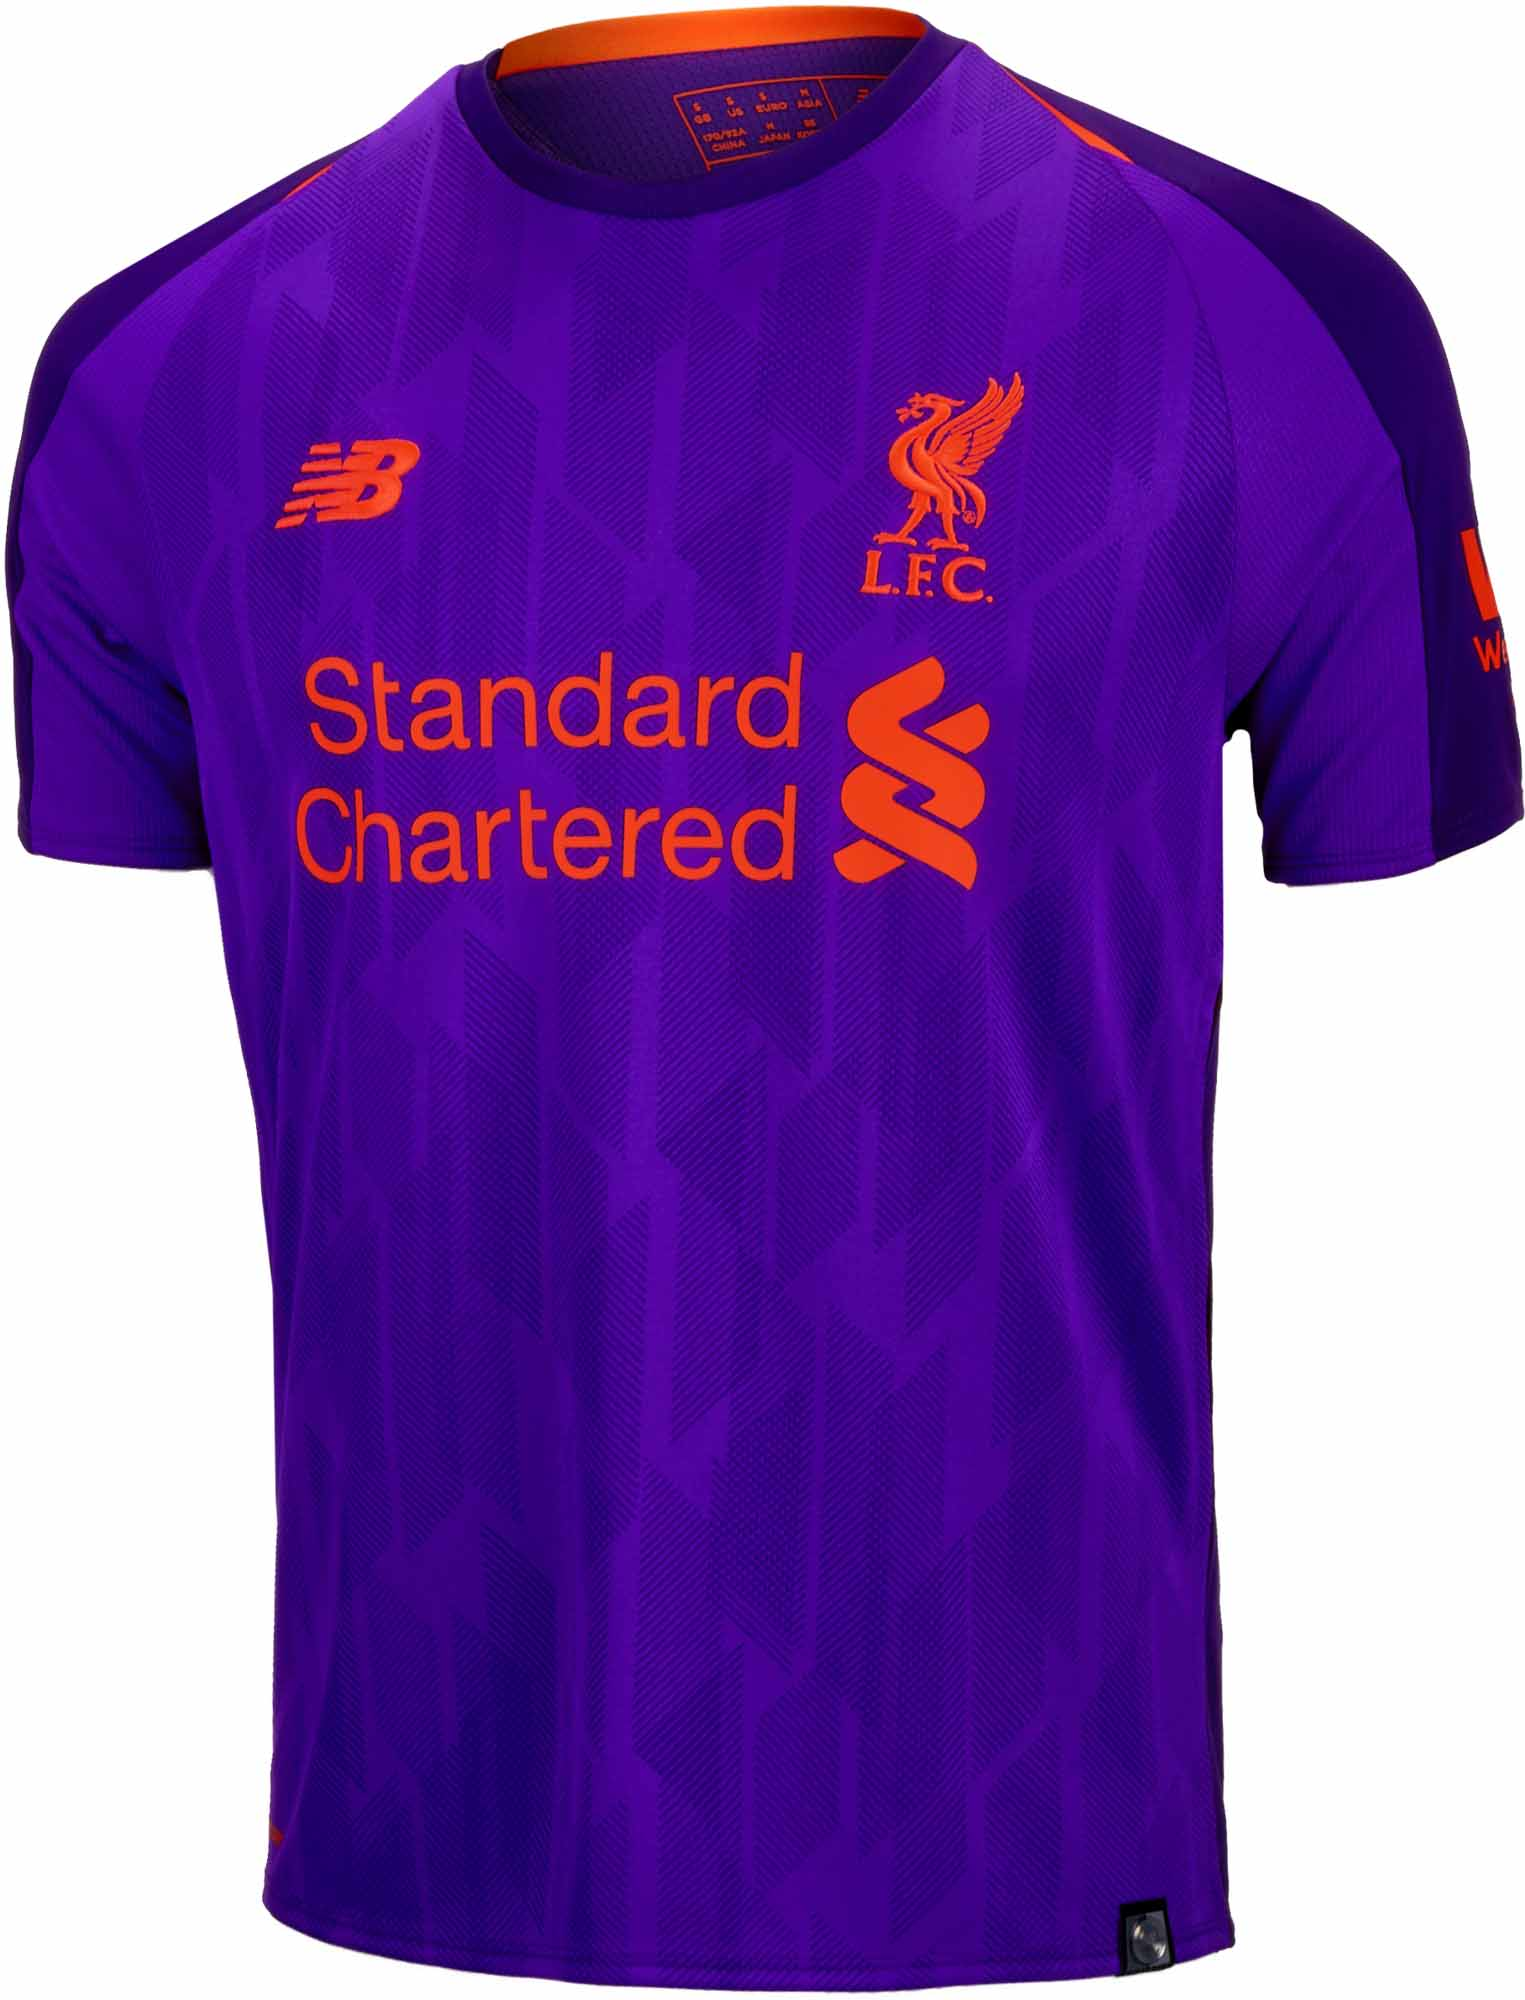 cheaper 7710d b349f 2018/19 Kids New Balance Liverpool Away Jersey - SoccerPro